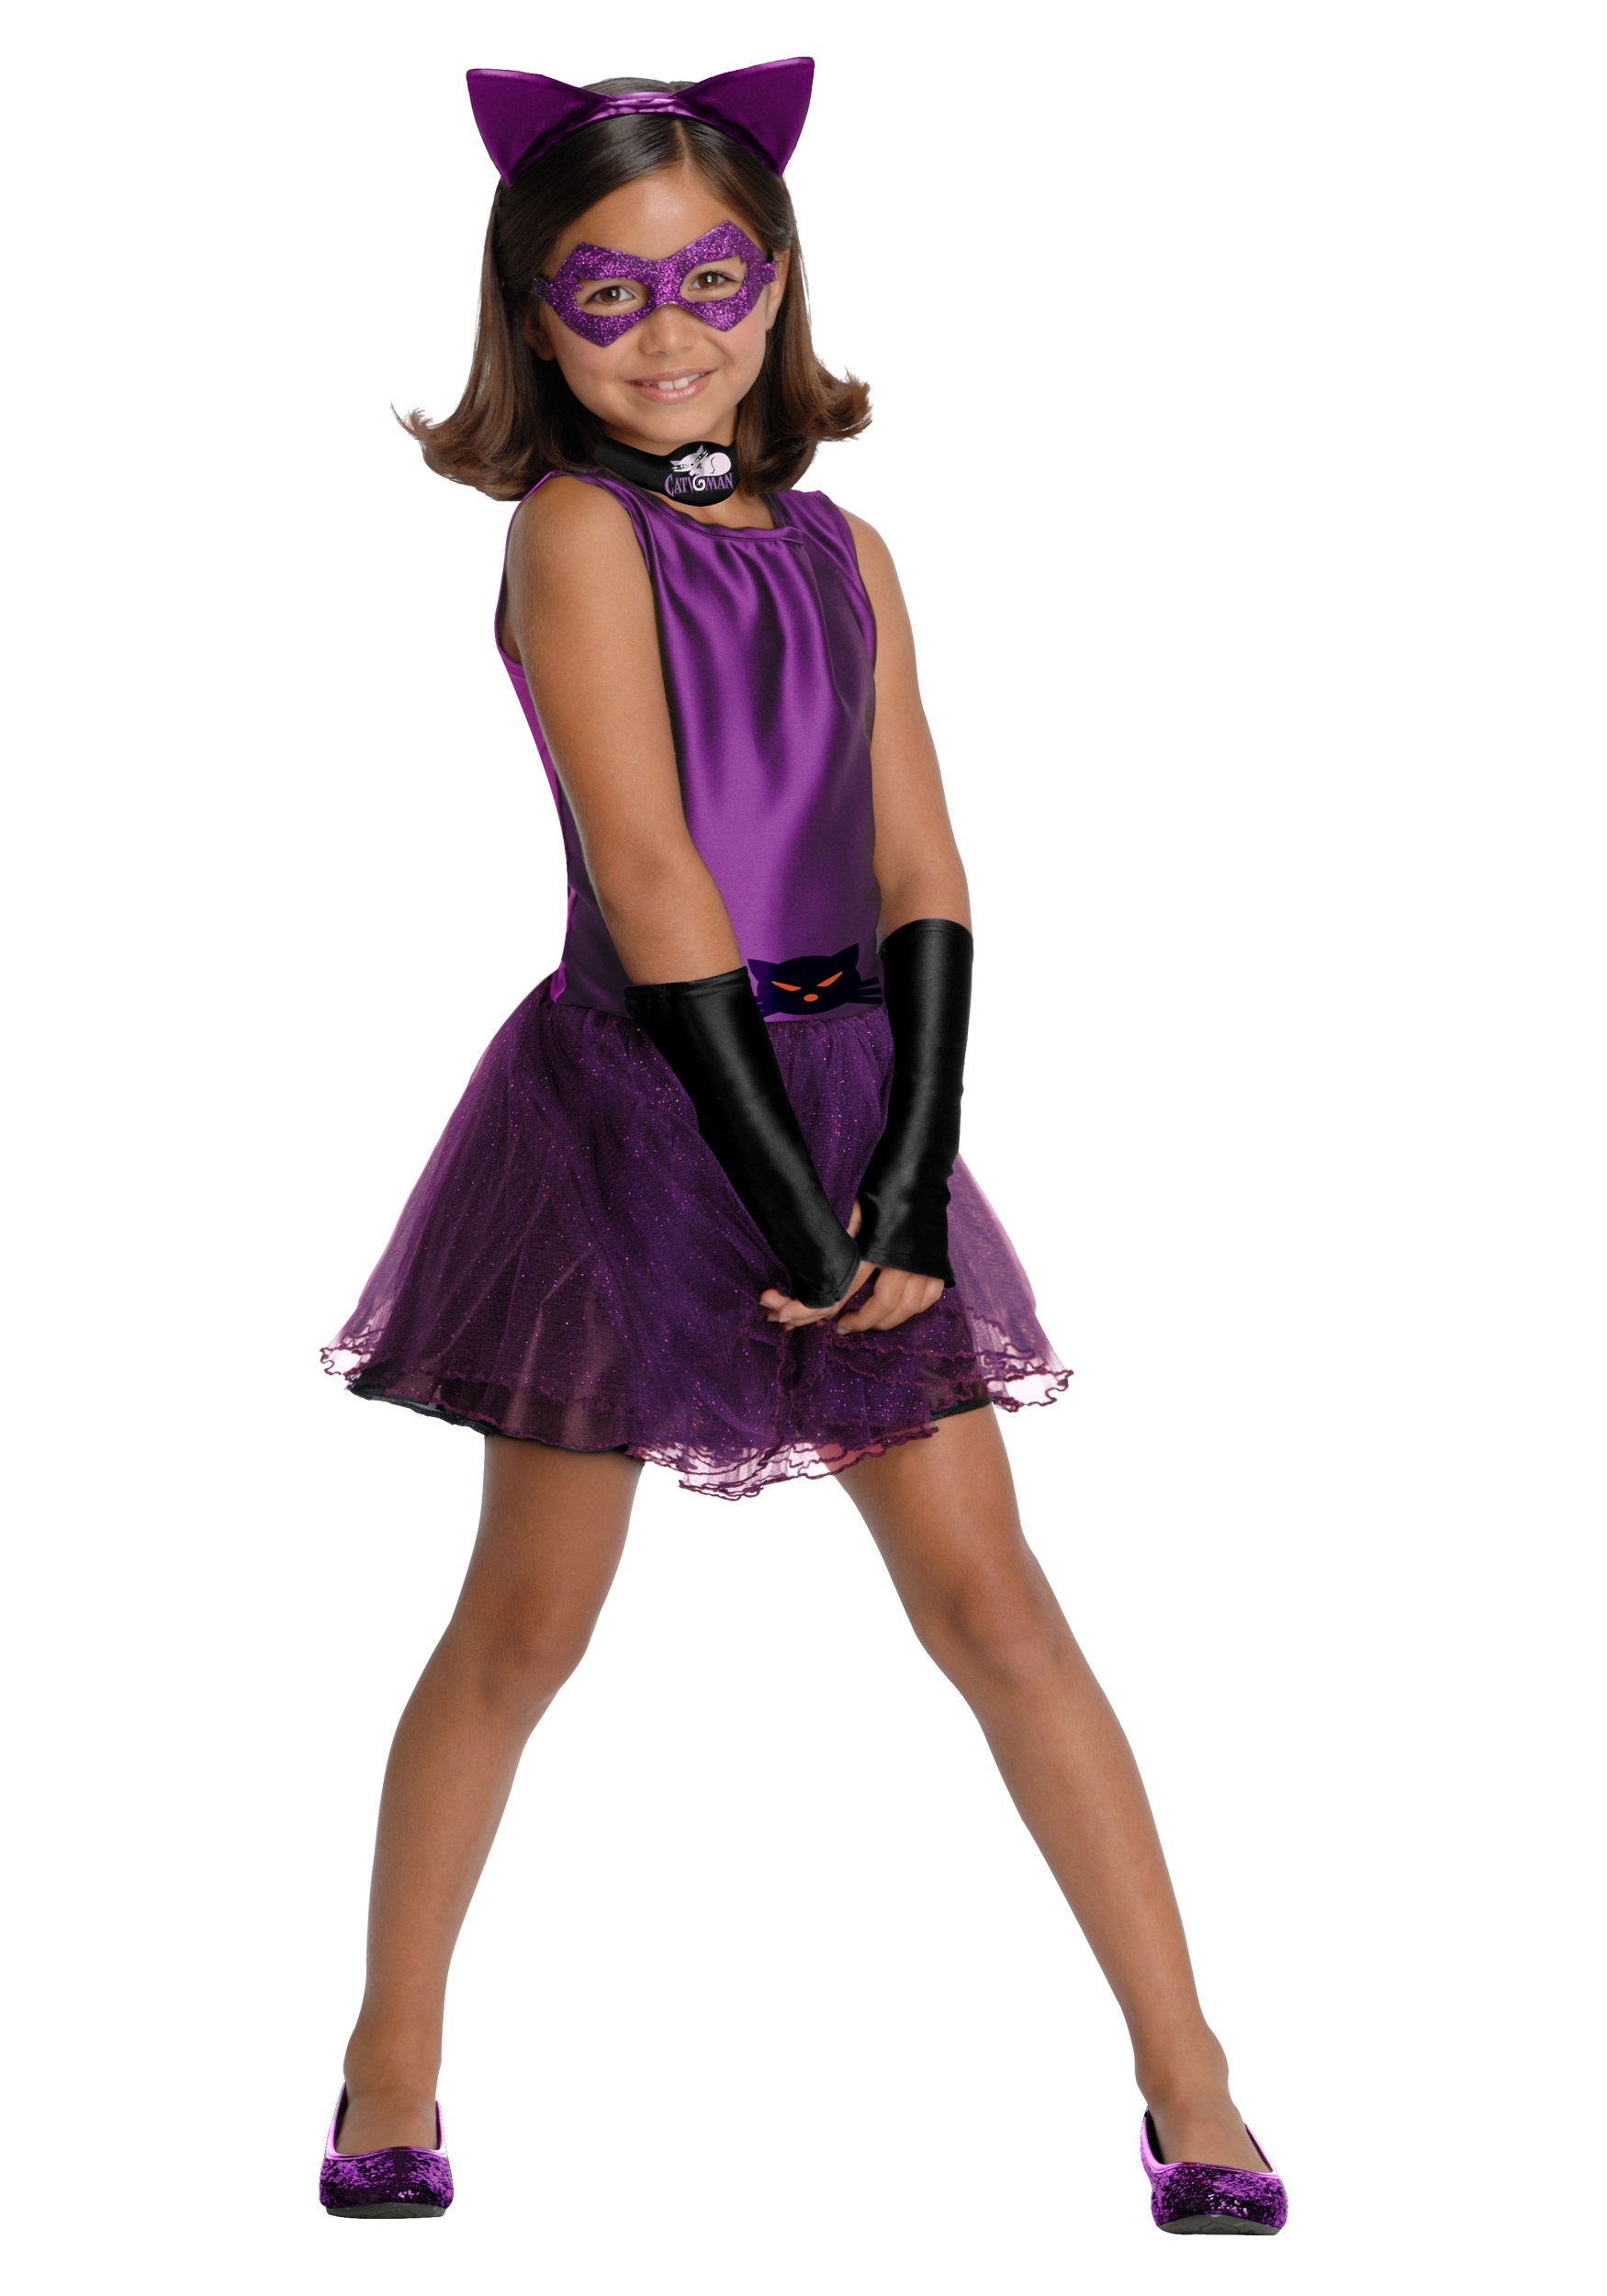 Baby Girls Halloween Costume Tutu Dress Pumpkin Halter Romper Jumpsuit Outfits. by ONE'S. $ - $ $ 8 $ 13 99 Prime. FREE Shipping on eligible orders. Some sizes/colors are Prime eligible. out of 5 stars 5.